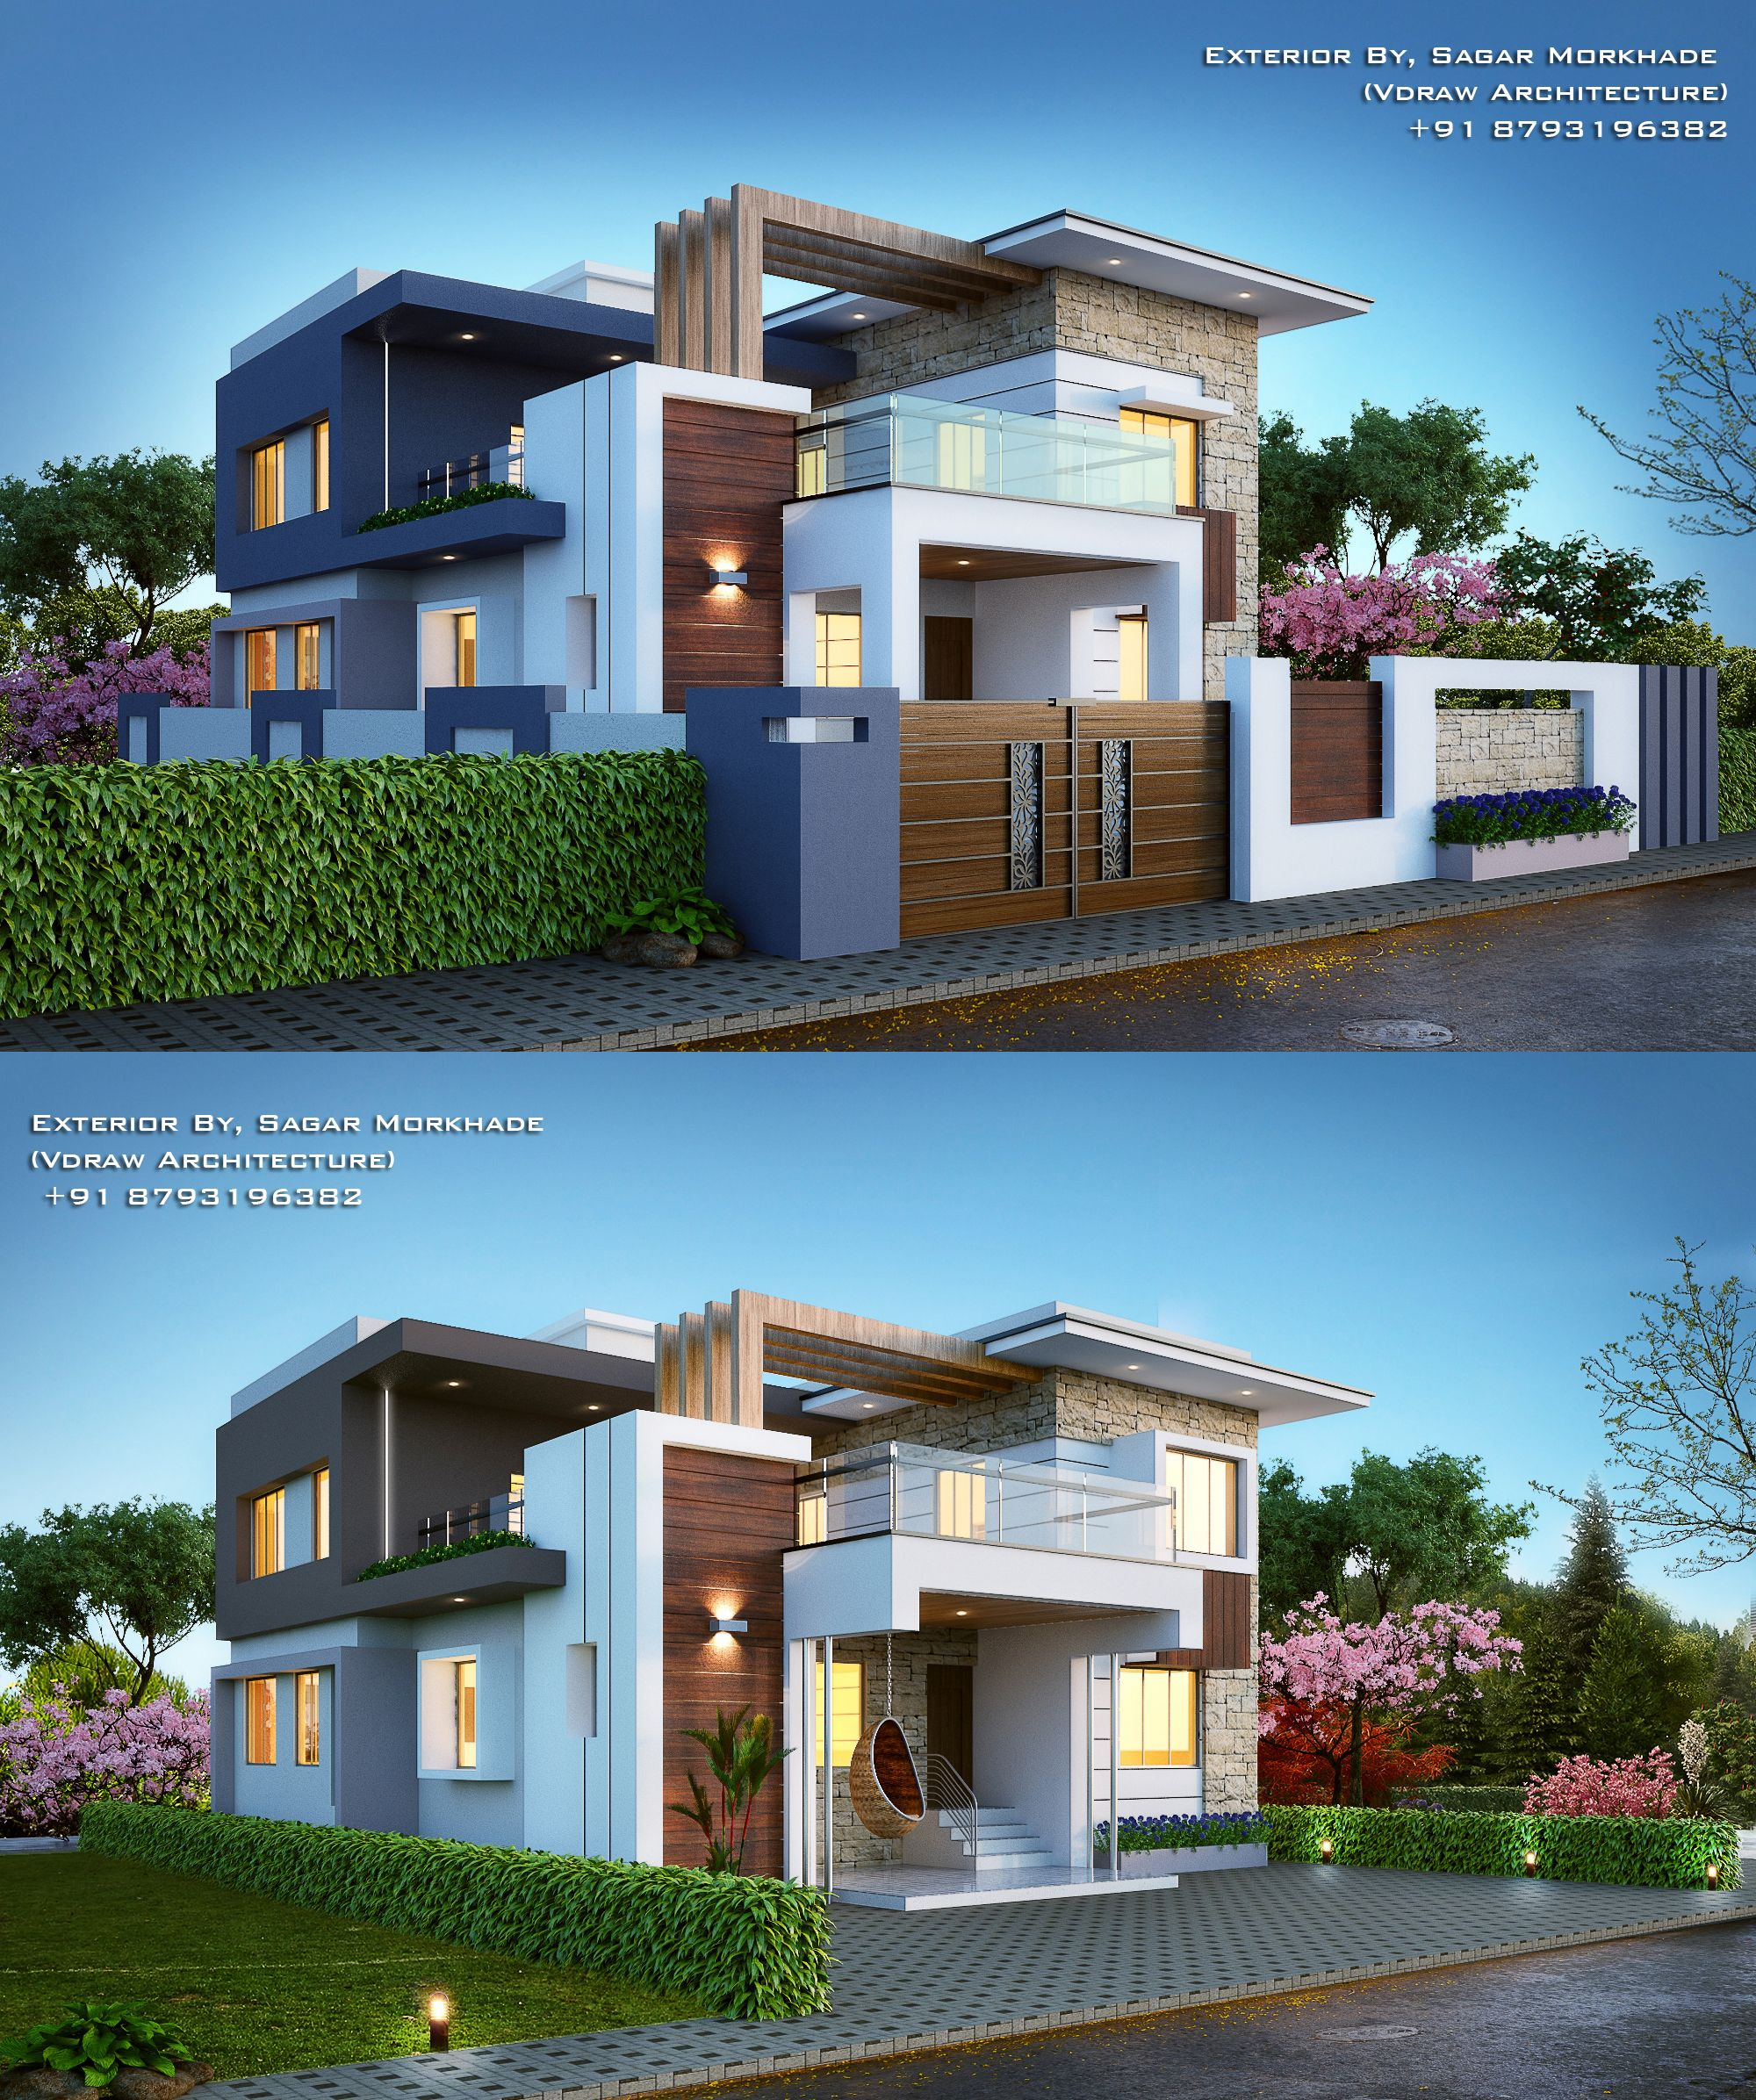 Modern house bungalow exterior by sagar morkhade vdraw architecture also contemporary design hunain   kanal rh pinterest